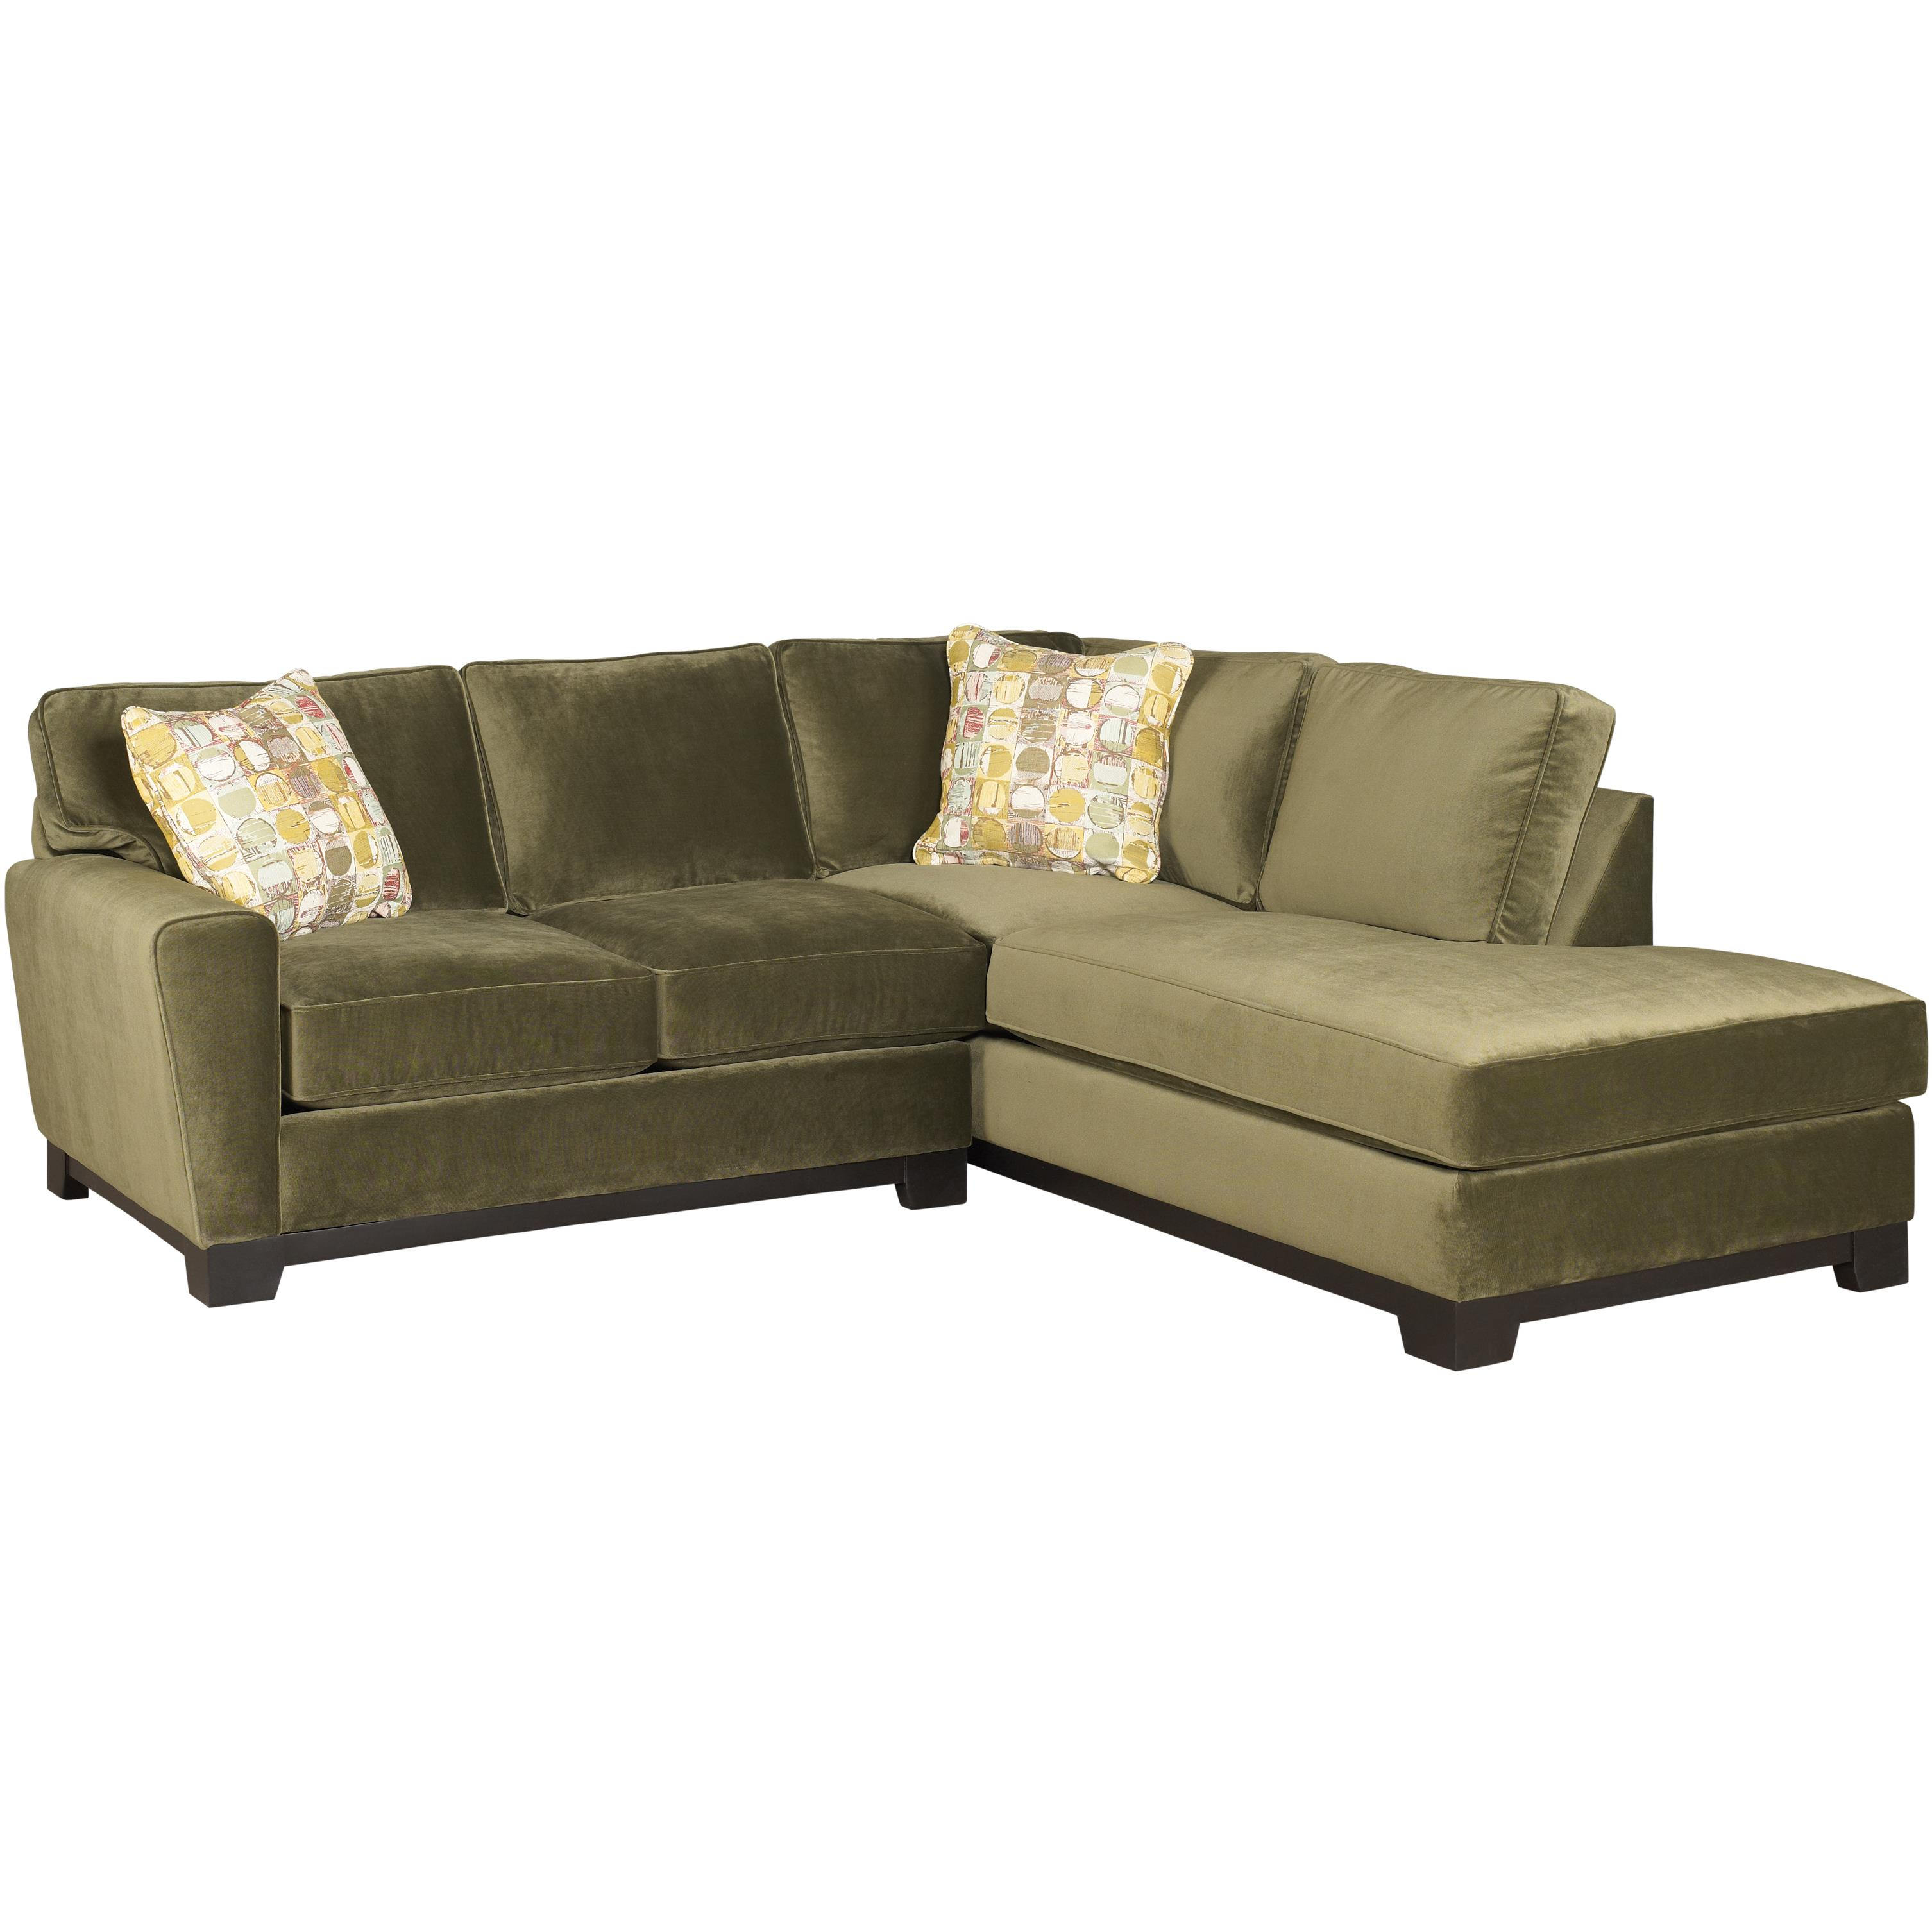 Choices - Taurus 3-Piece Chaise Sectional by Jonathan Louis at Stoney Creek Furniture